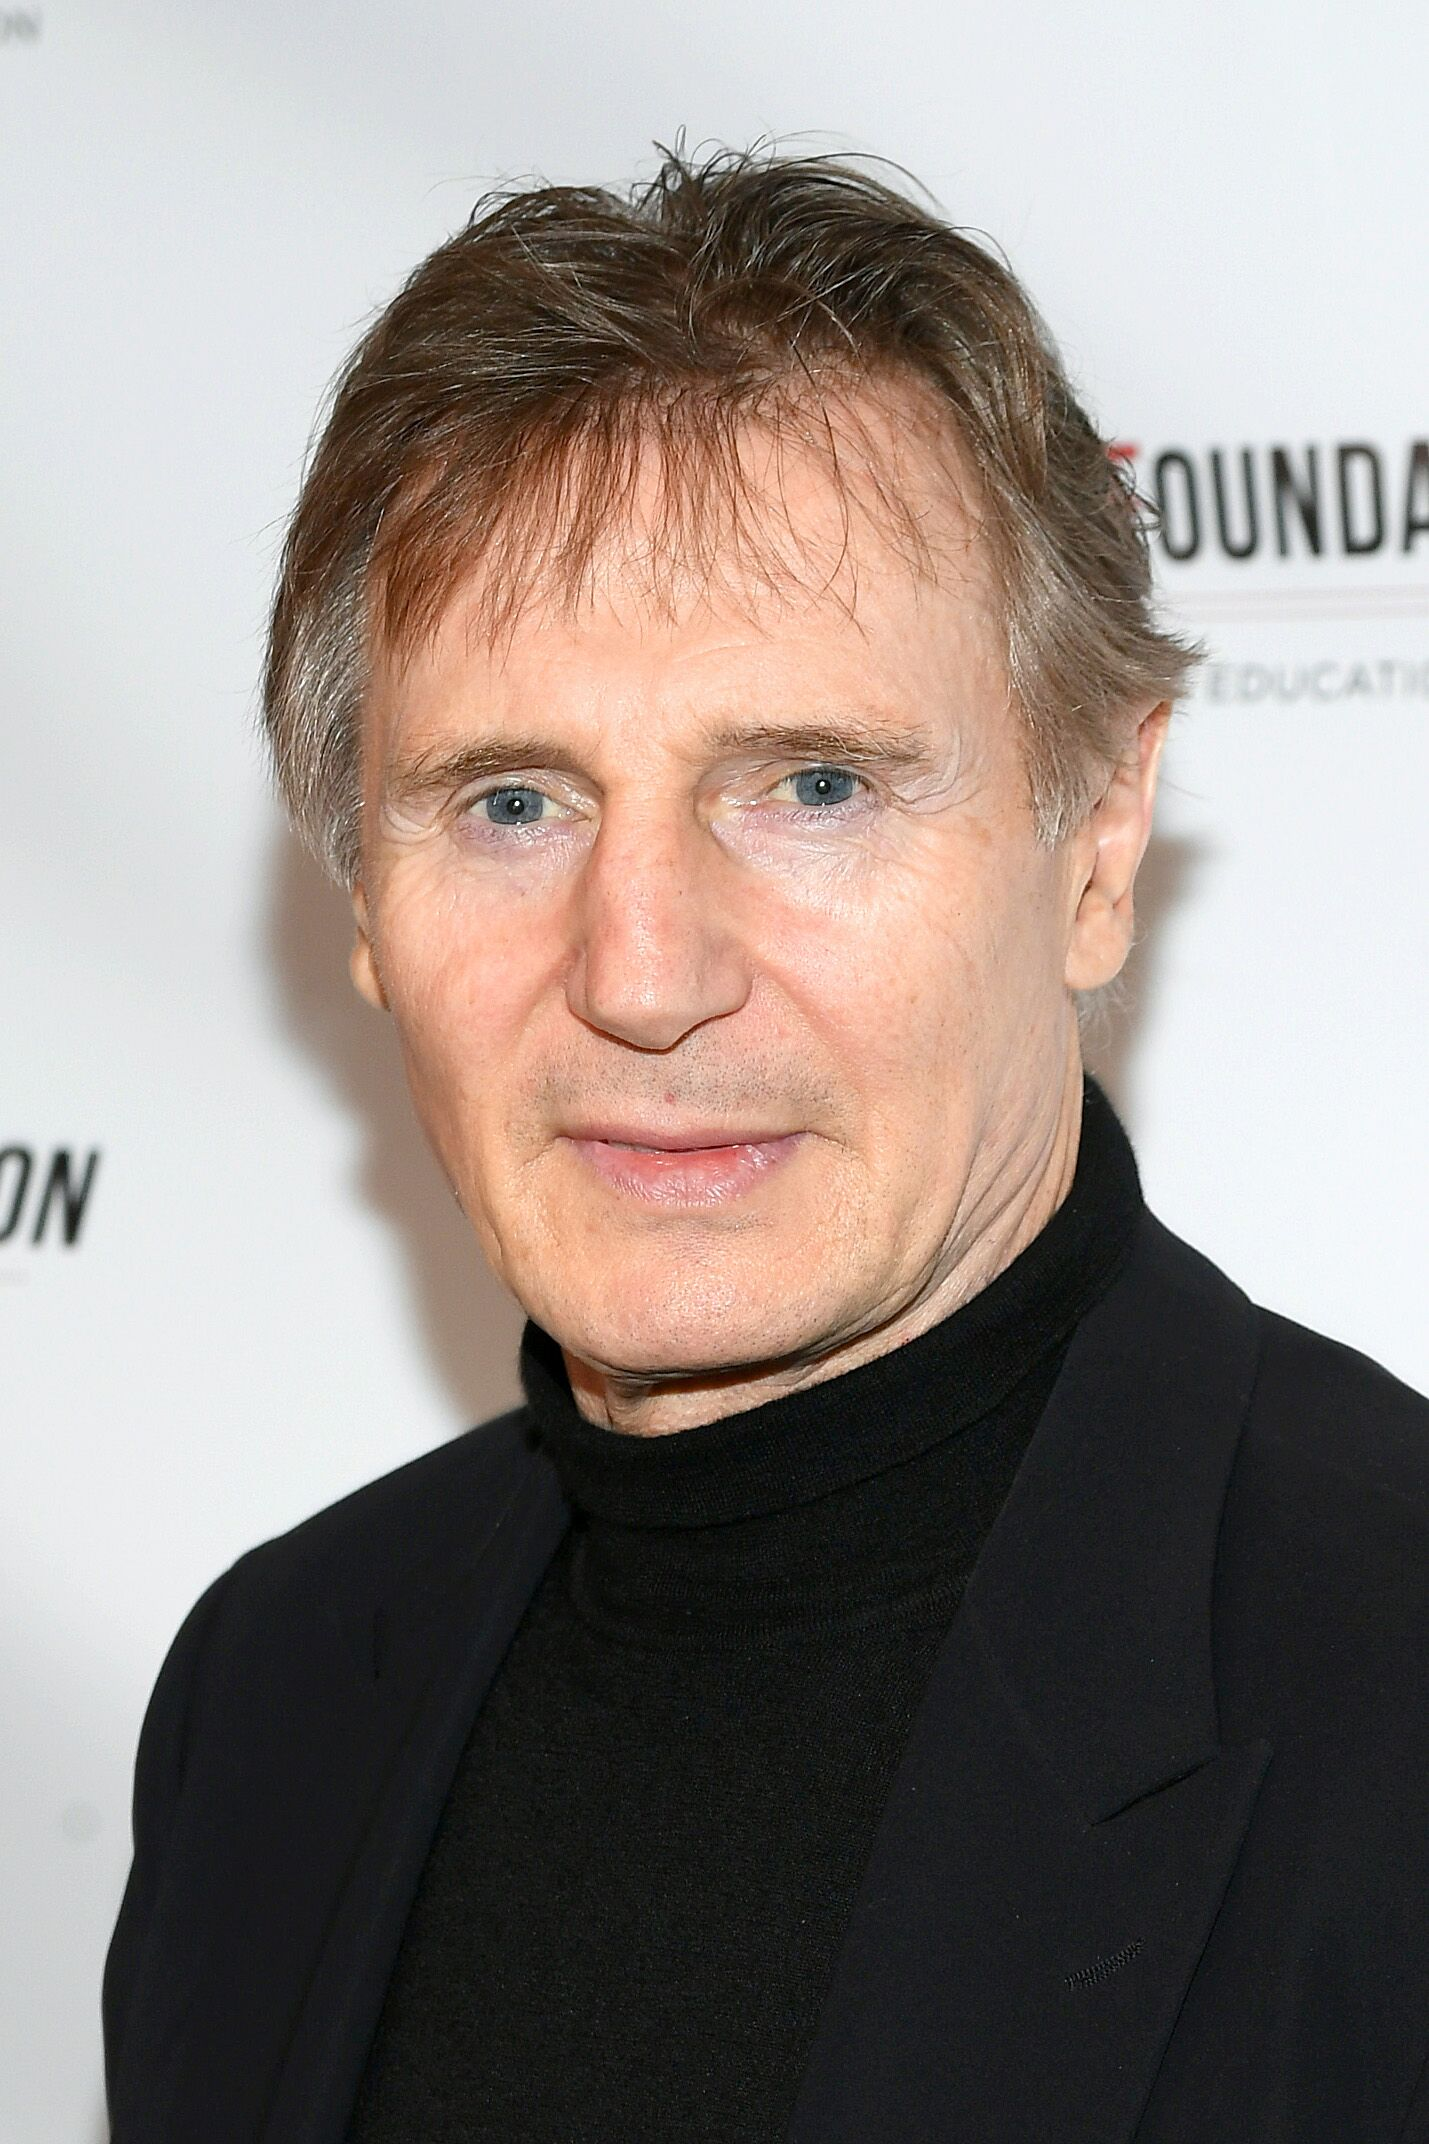 Liam Neeson à la cérémonie d'Honneur de la Fondation Arthur Miller en 2018 | Getty Images/Global Images Ukraine